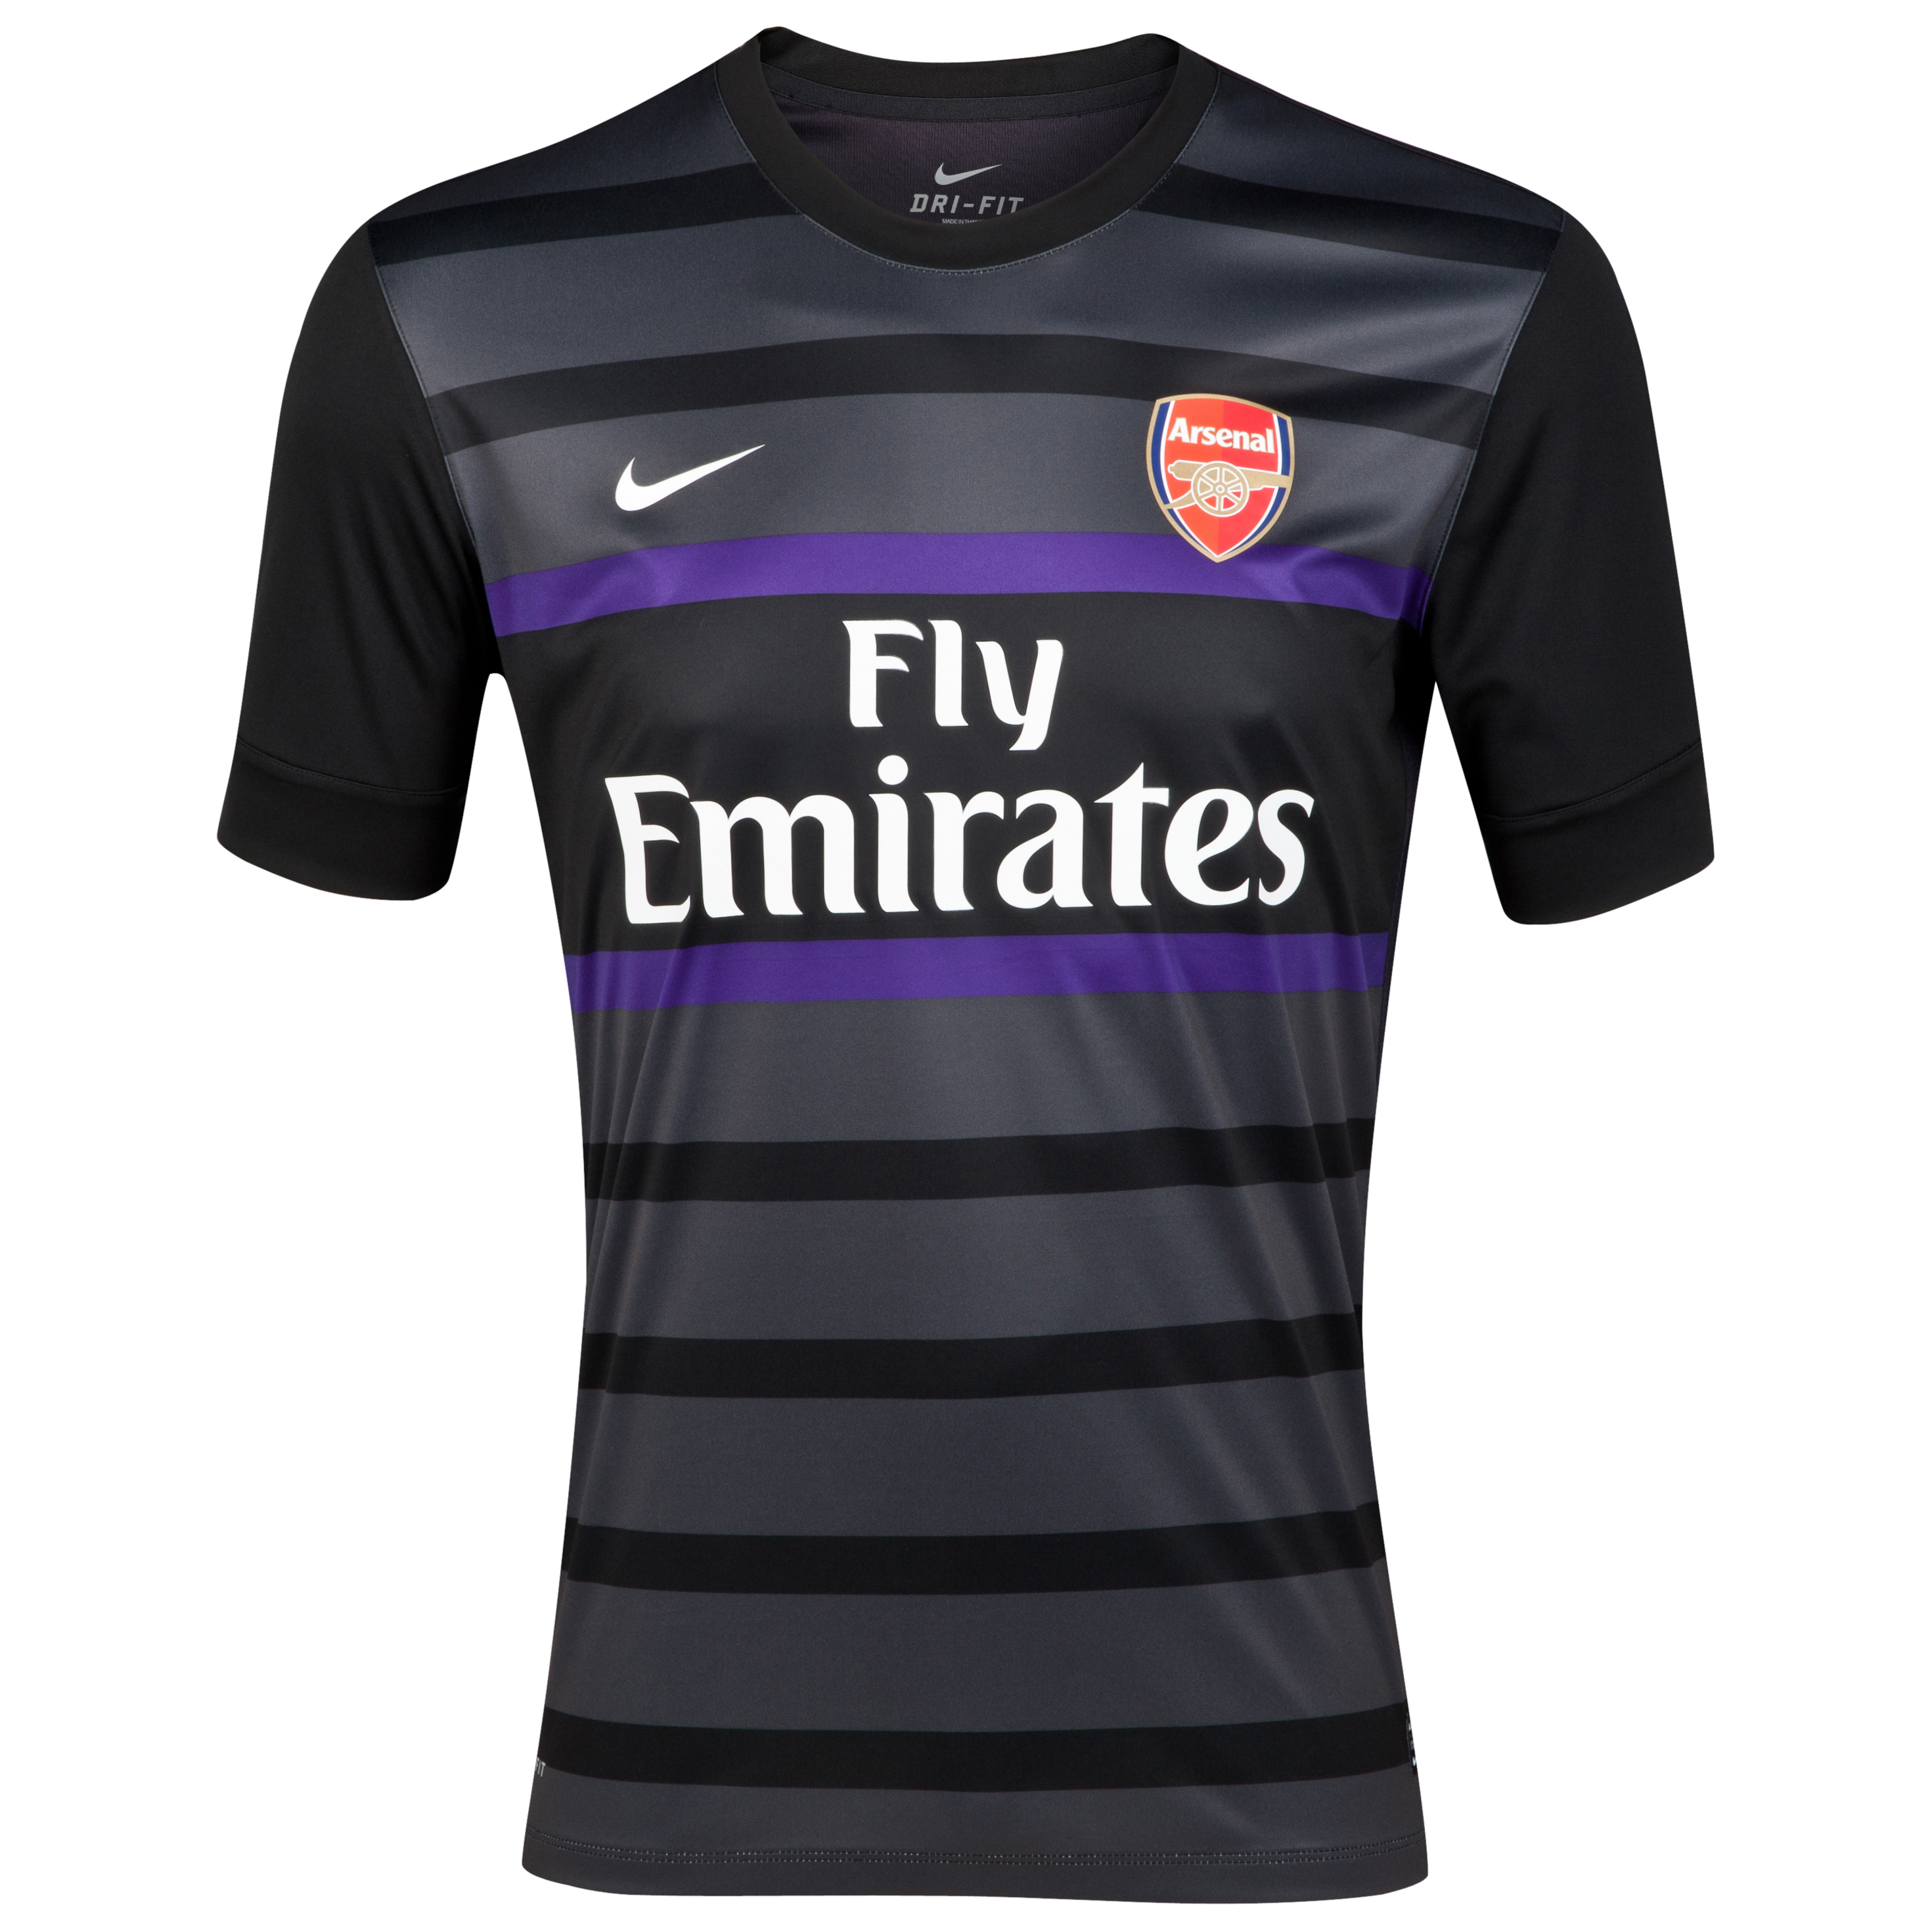 Arsenal Short Sleeve Pre Match Top 1  - Black/Anthracite/Court Purple/White